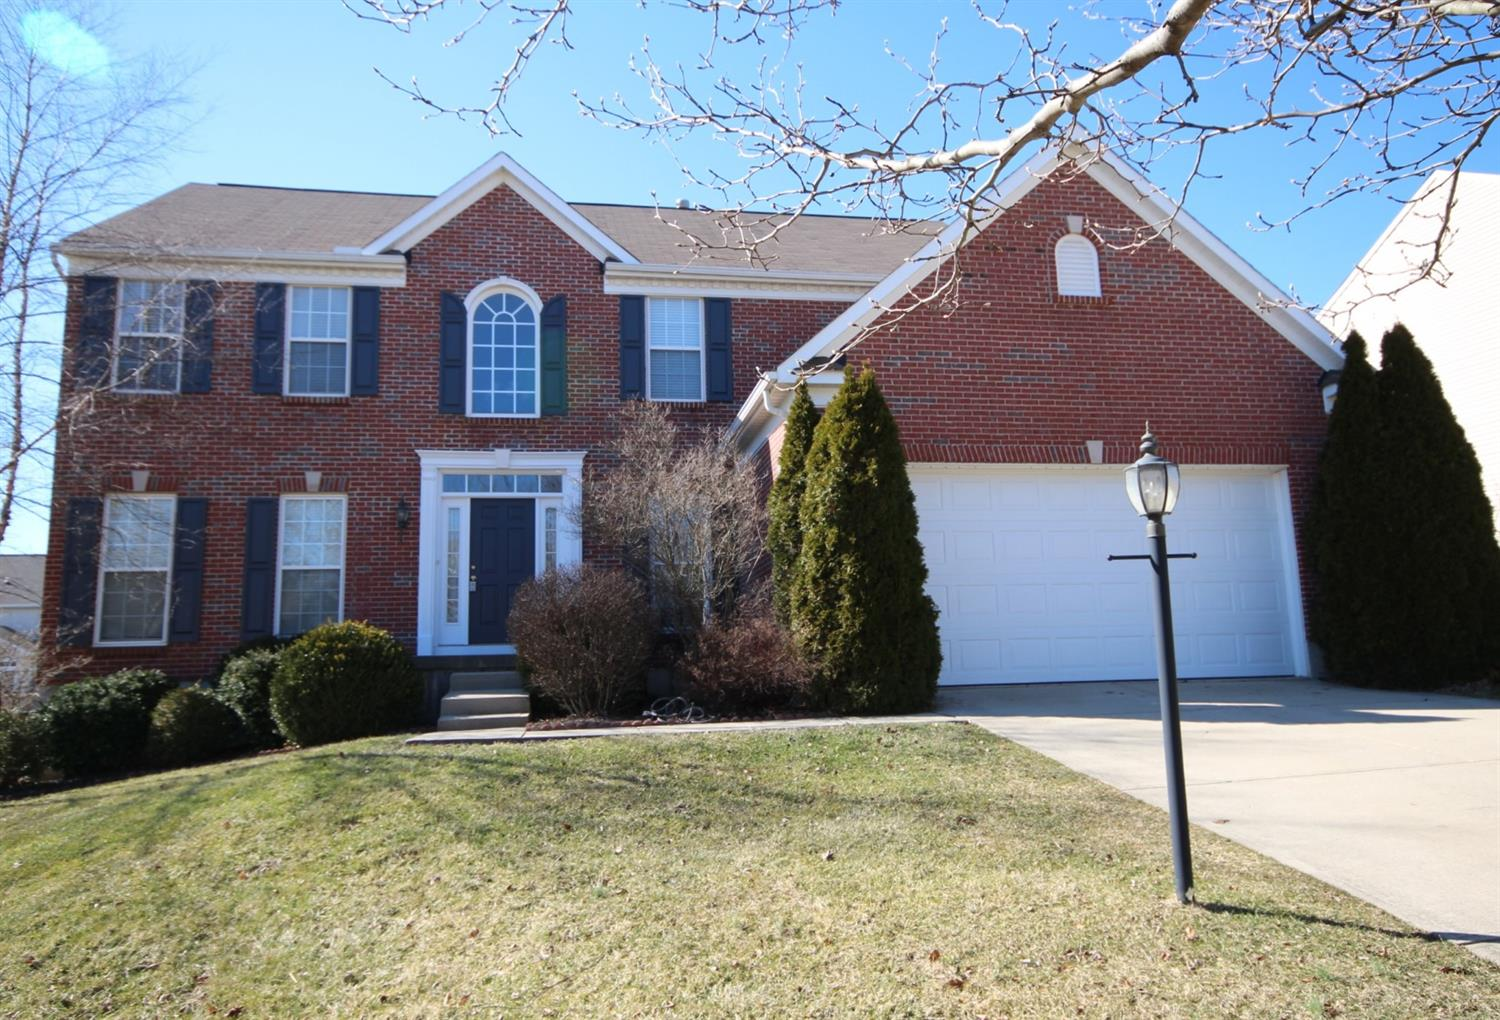 Property for sale at 81 Stanton Drive, Springboro,  Ohio 45006